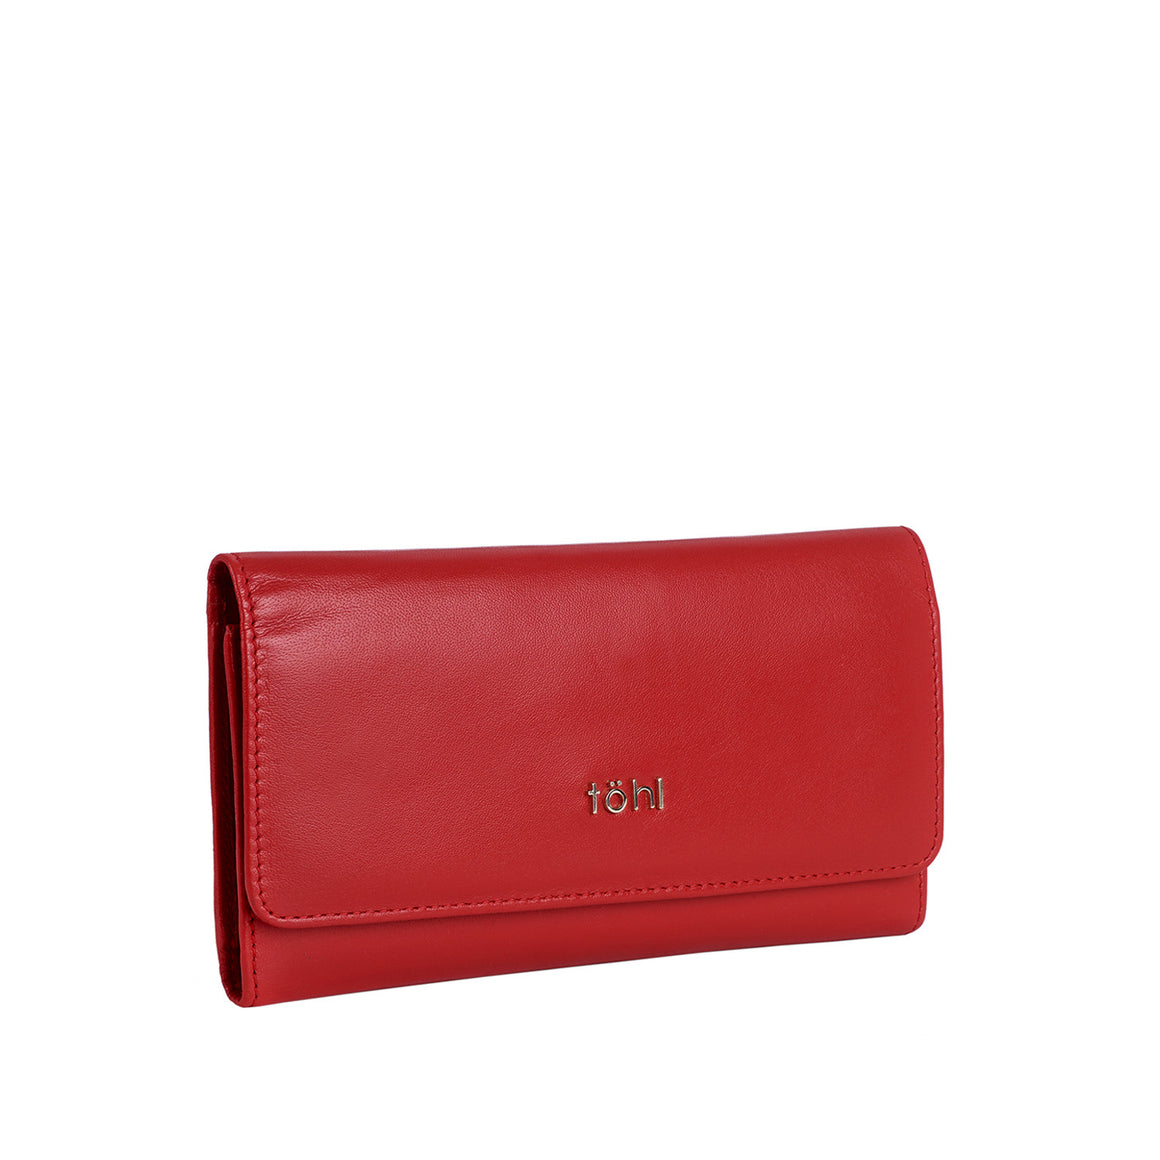 WT 0012 - TOHL BOBBI WOMEN'S FLAPOVER WALLET - SPICE RED